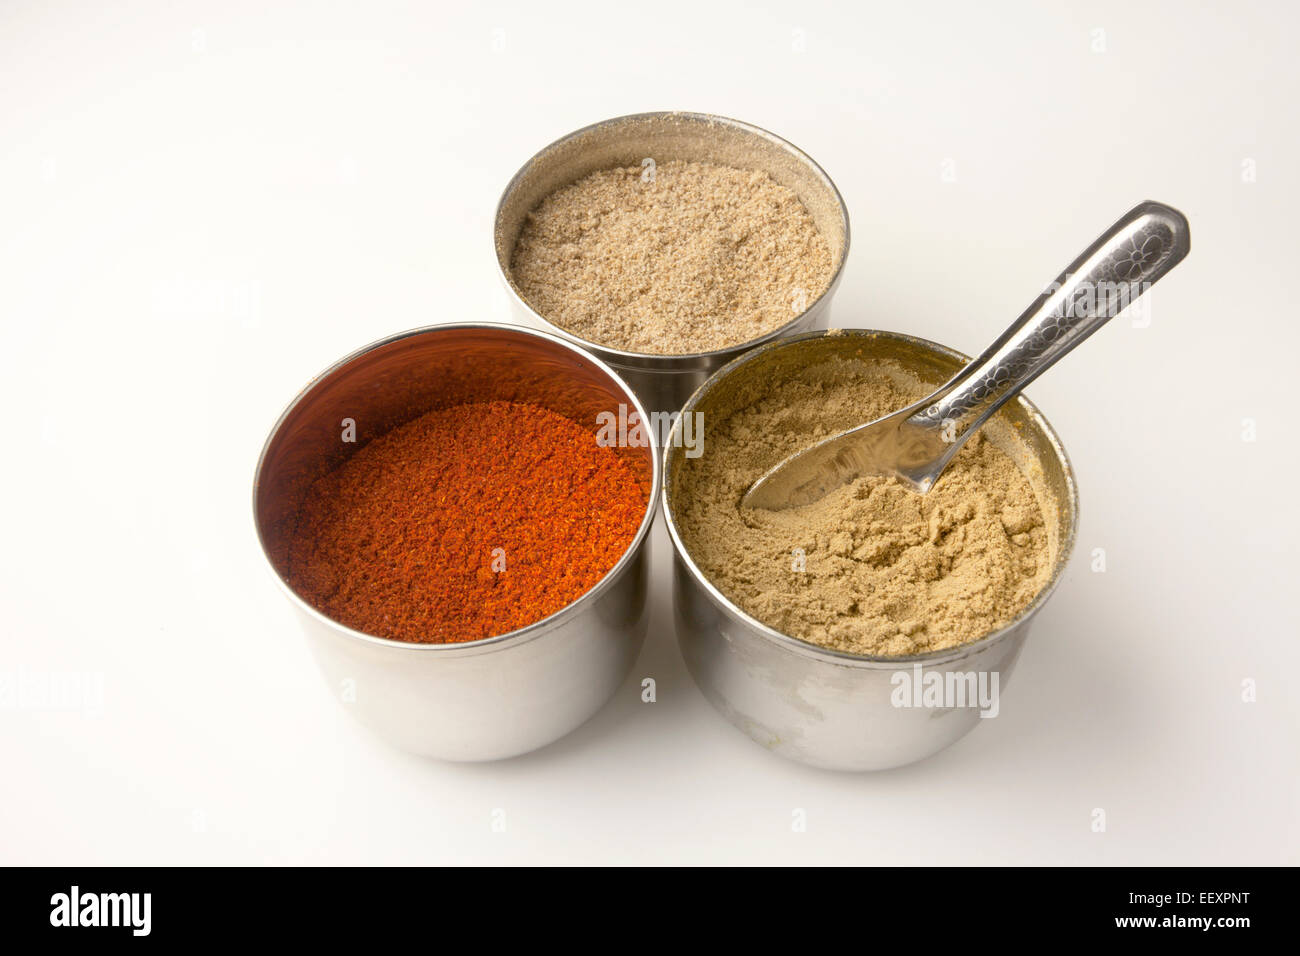 Stainless Steel Pots of Ground Chilli Corinader and Ginger with a Measuring Spoon - Stock Image